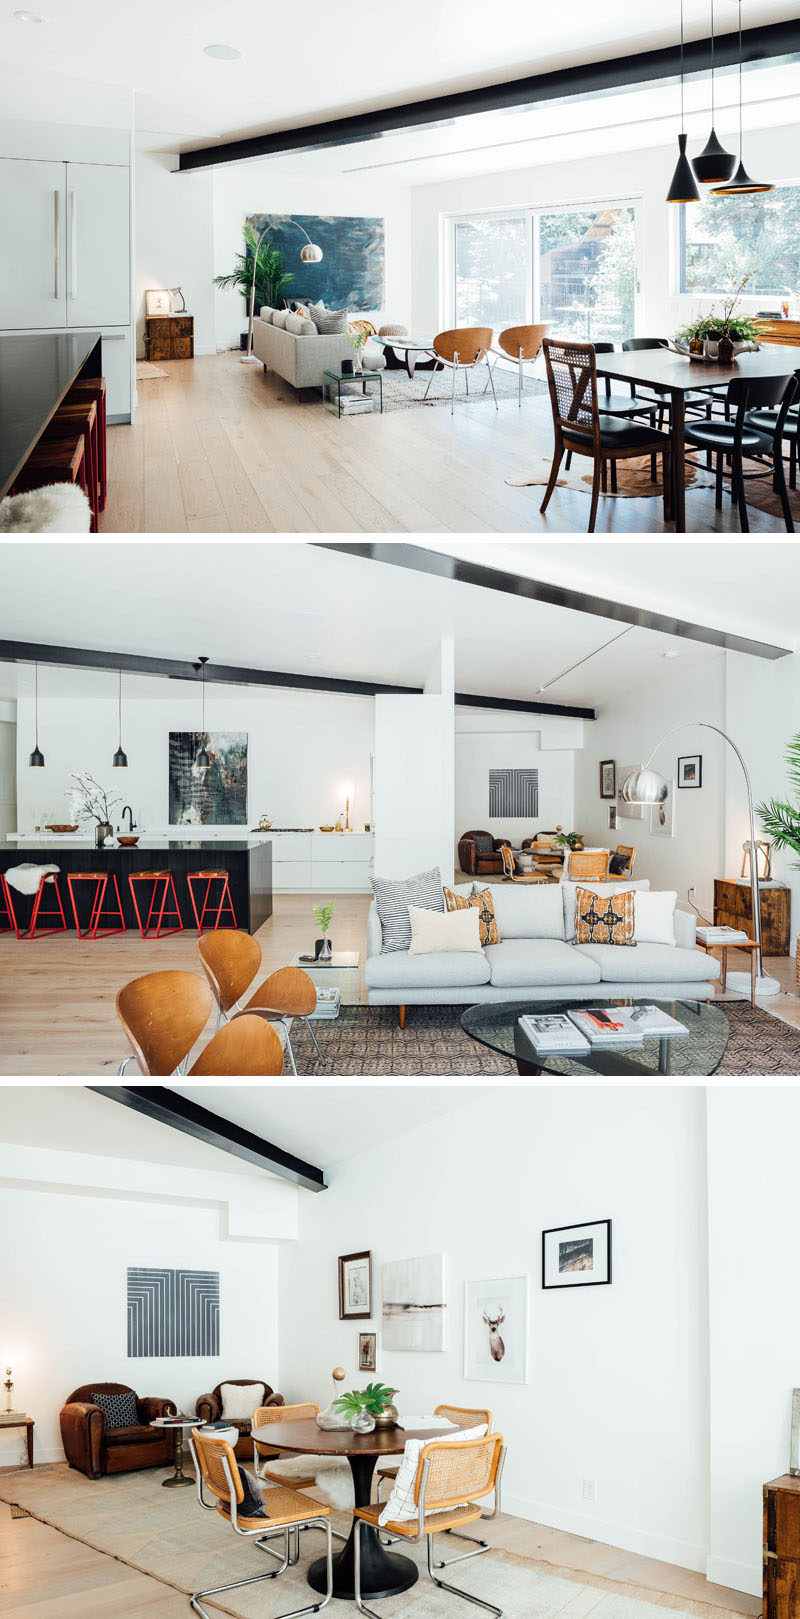 Inside this modern house, white walls, high ceilings, and large windows allow the open floor plan to feel bright and airy. A patterned rug defines the living room, while behind the couch, there's an alcove with a round table surrounded by chairs, and a couple of leather club chairs. #LivingRoom #ModernInterior #OpenFloorPlan